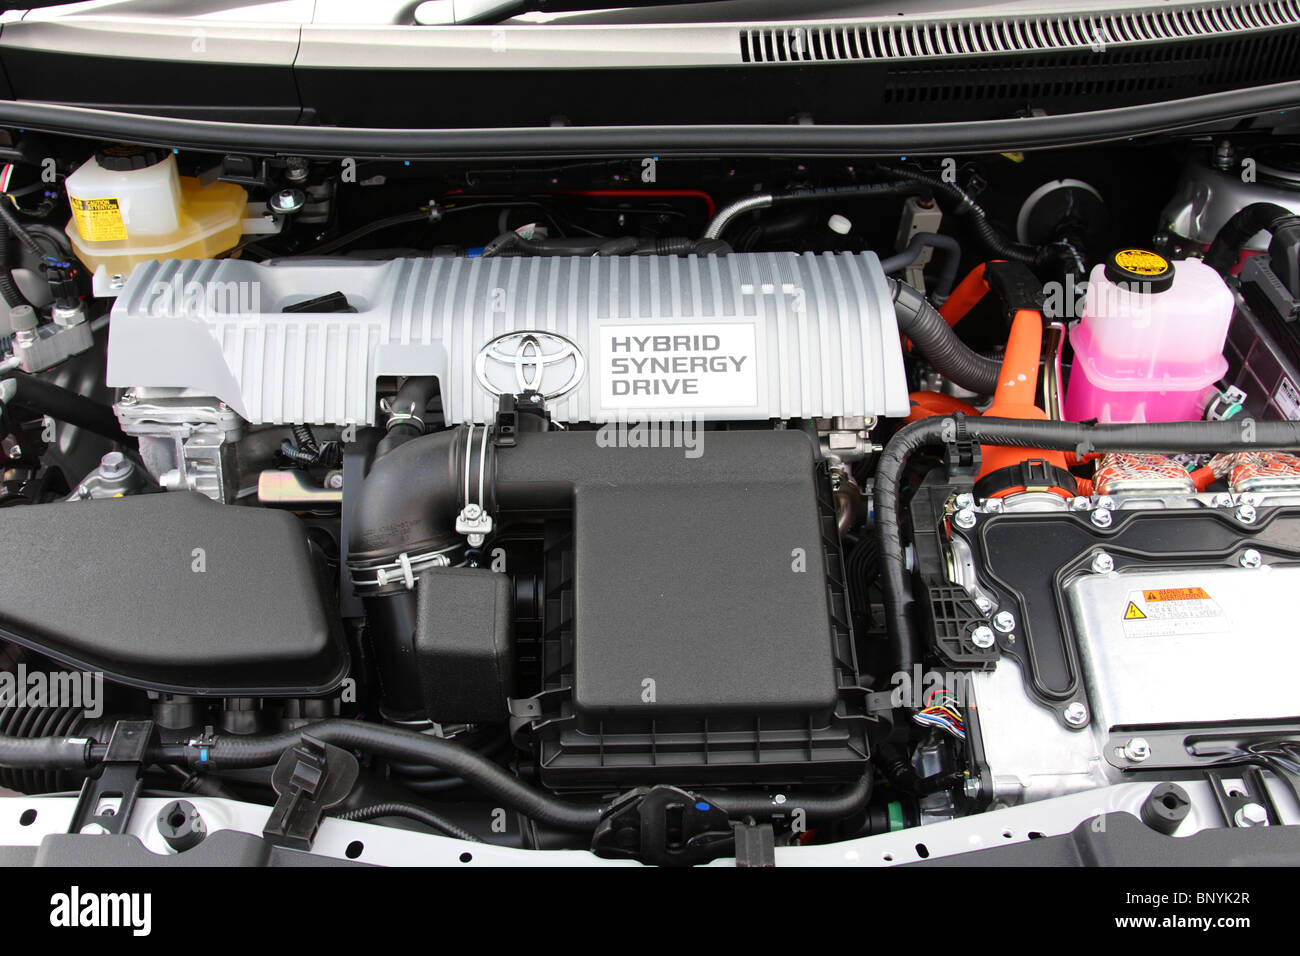 Un moteur hybride de Toyota. Photo Stock